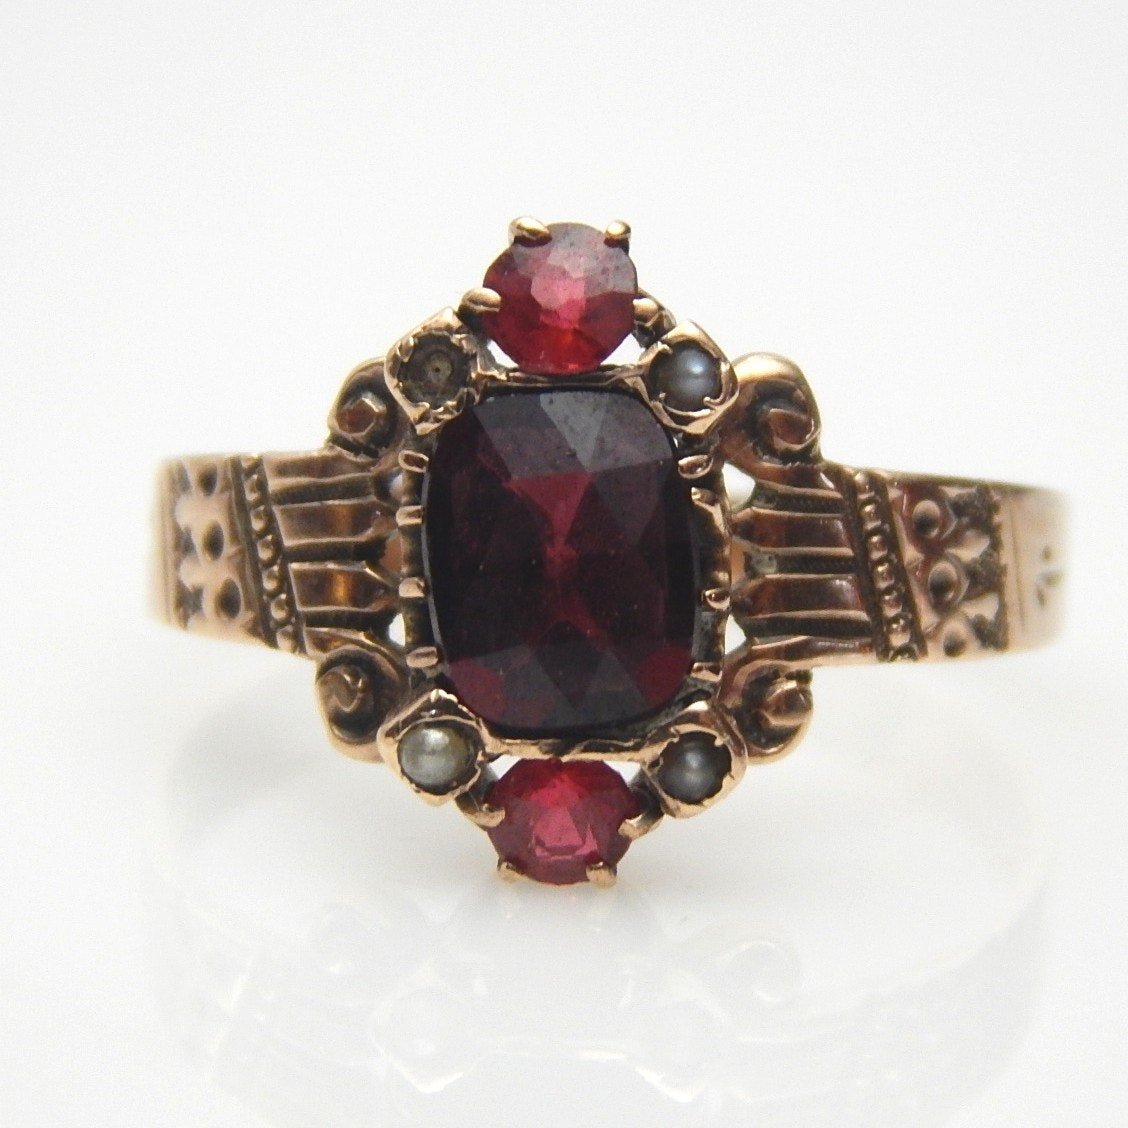 9K Rose Gold Victorian Garnet, Glass, and Seed Pearl Ring